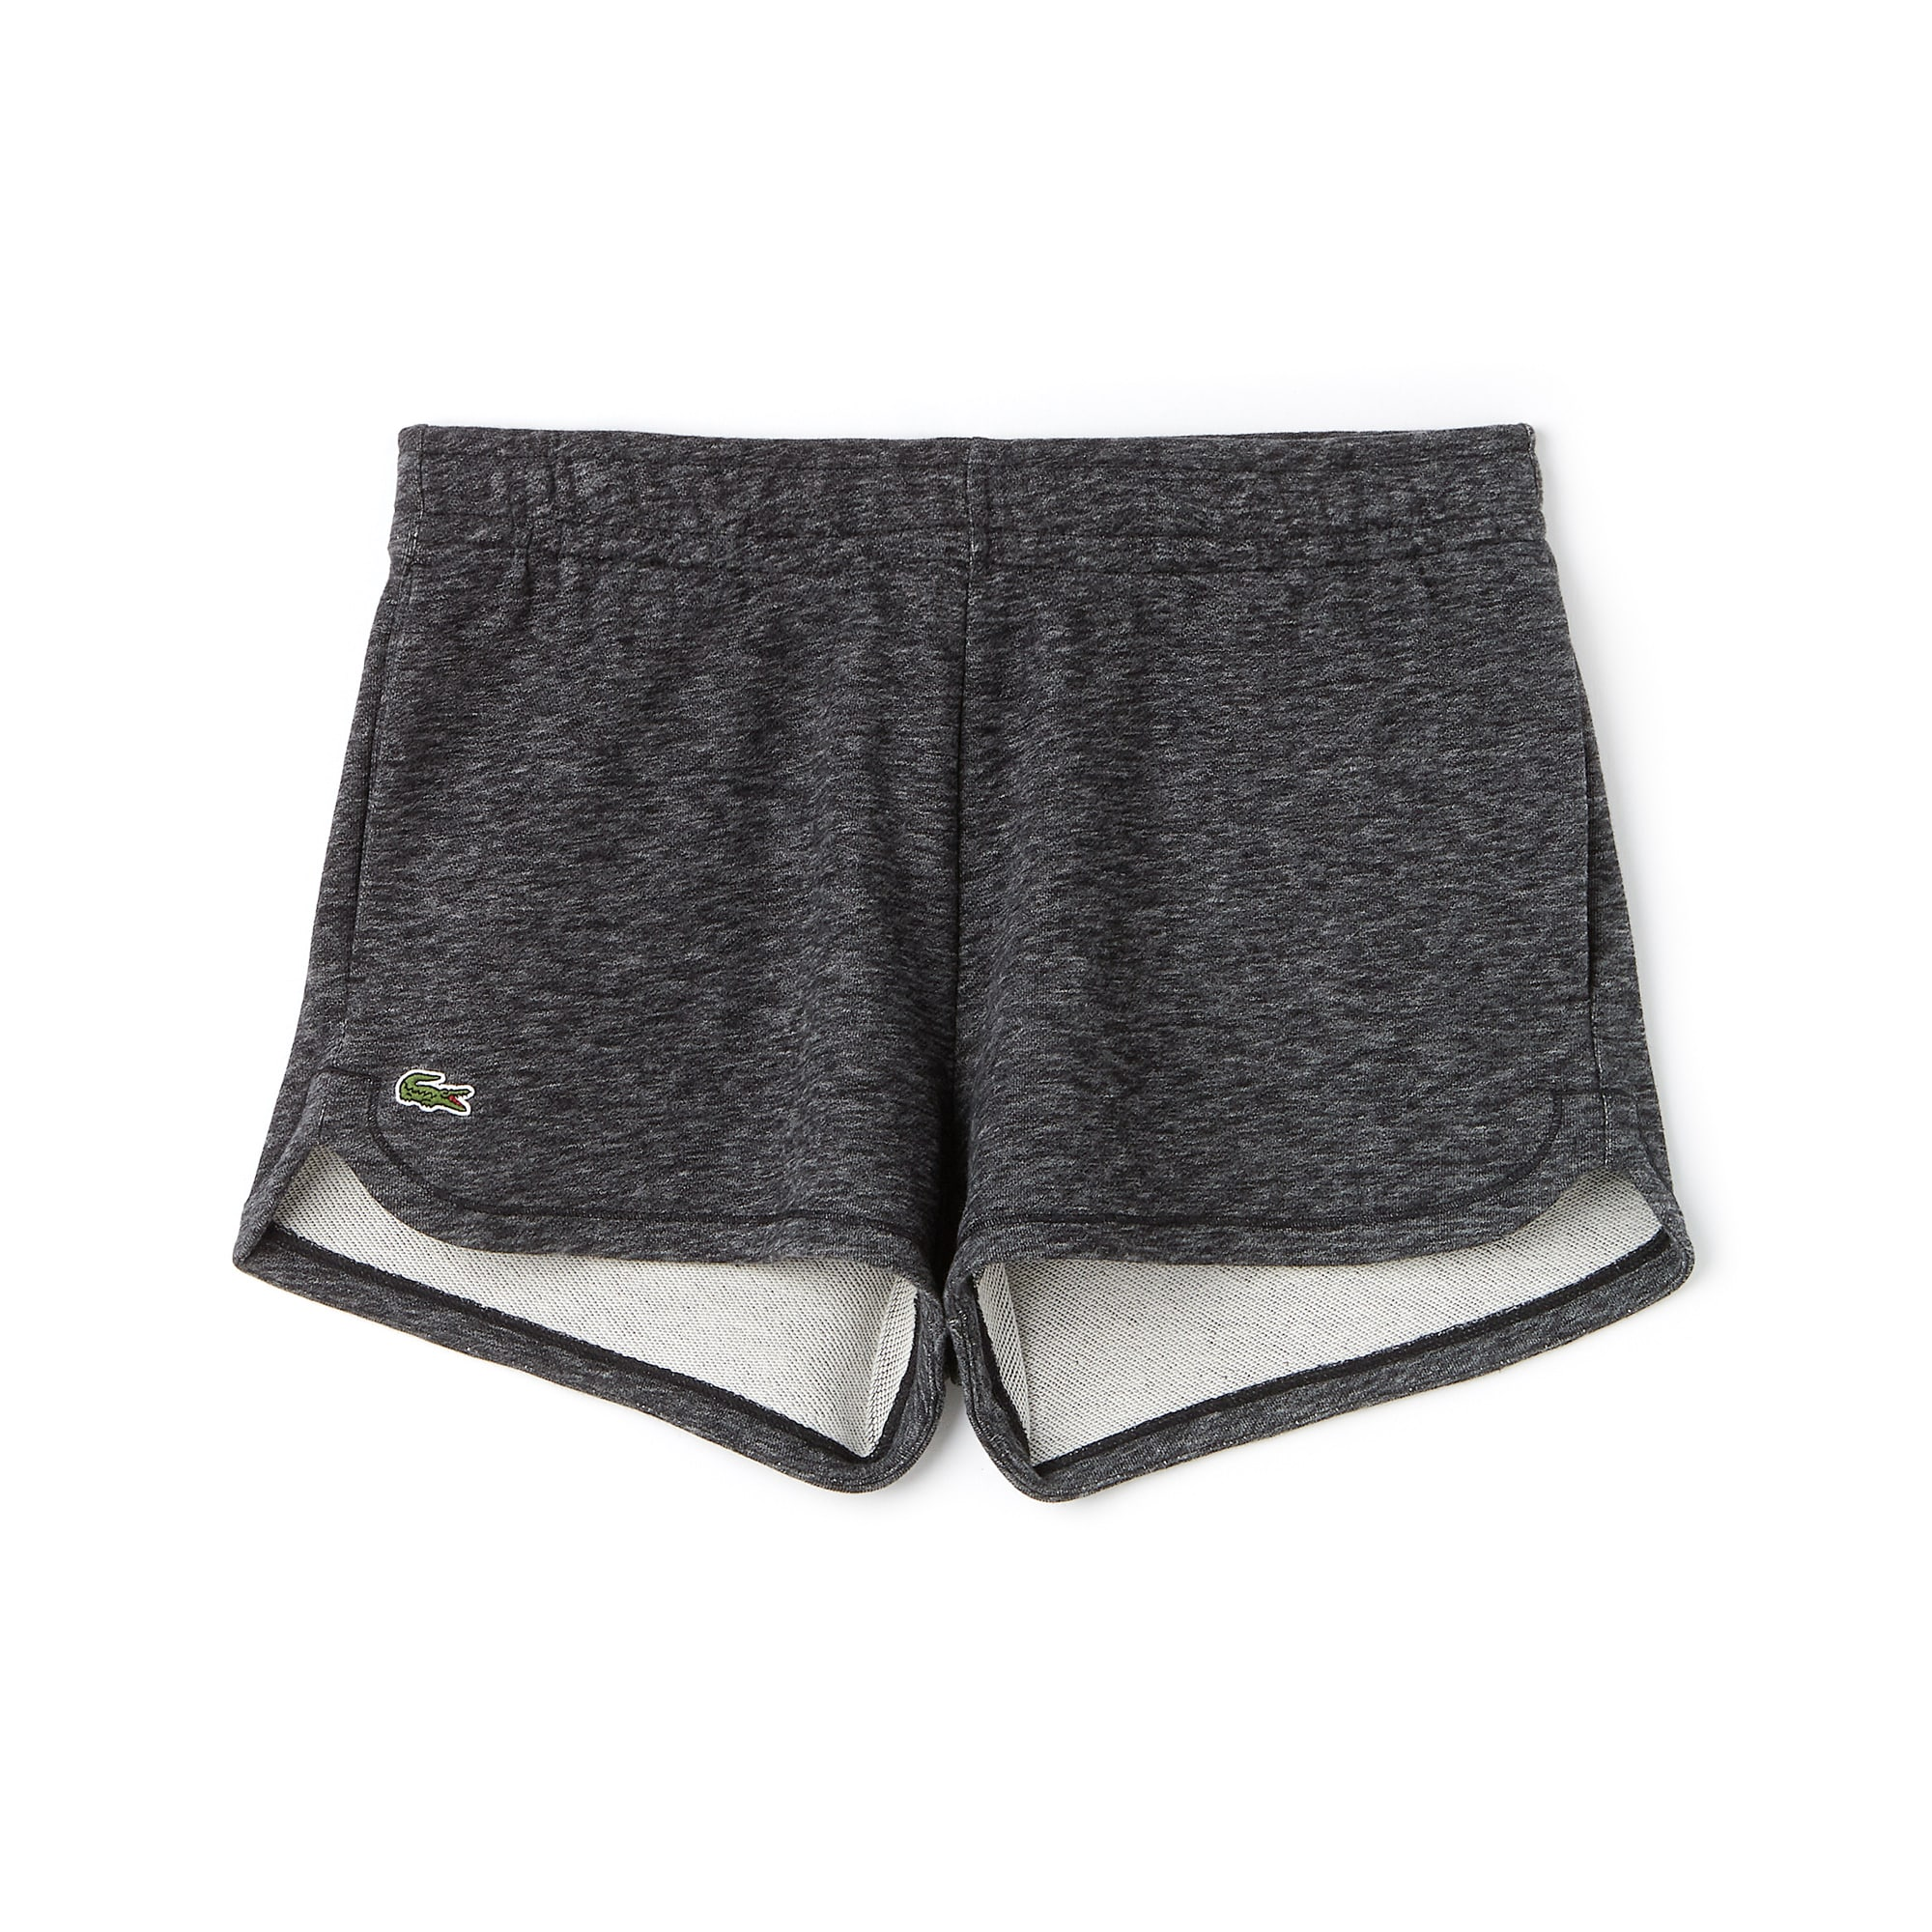 Damen-Shorts aus Fleece LACOSTE SPORT TENNIS